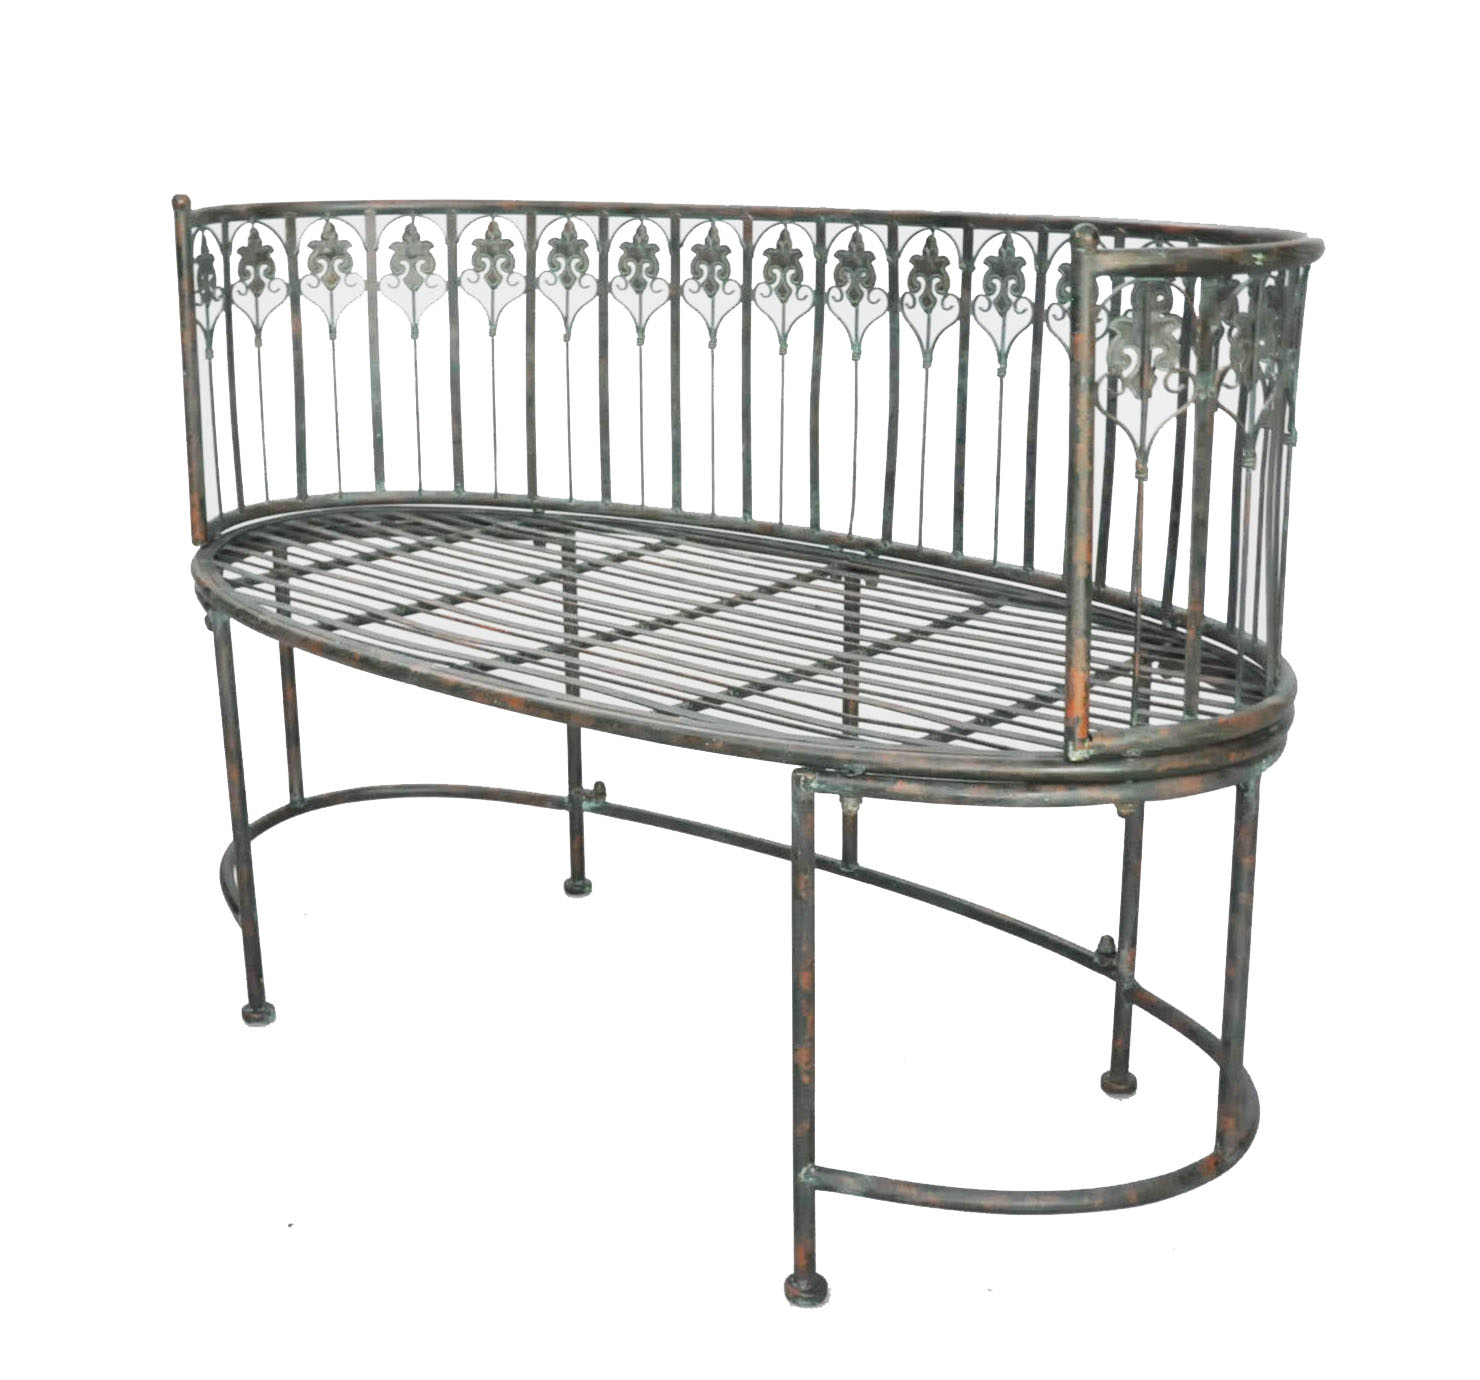 Banc Fer Forgé Leroy Merlin Beautiful Salon De Jardin Fer Forge Gris Contemporary